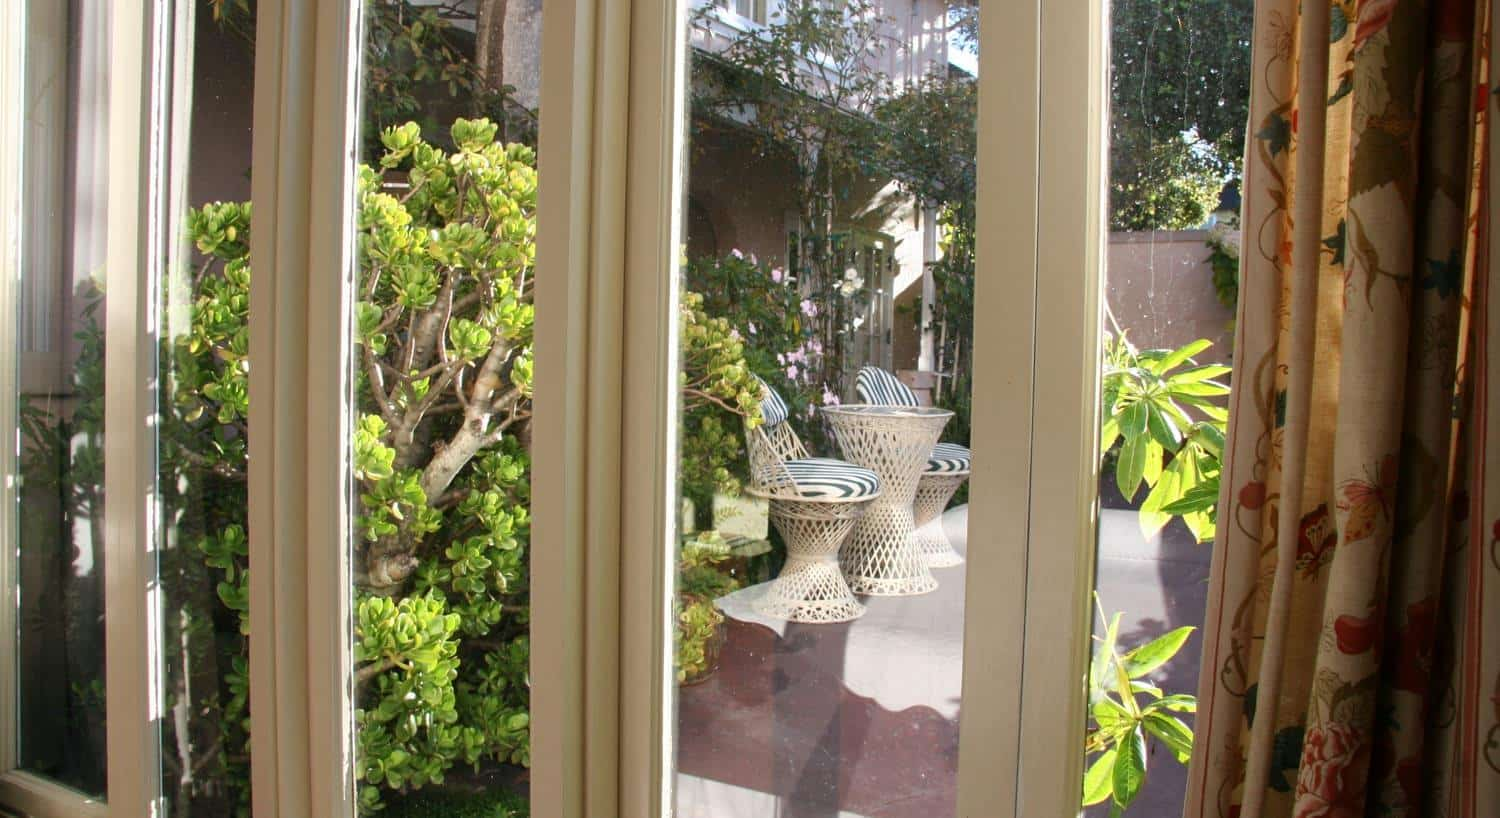 Garden guest room window with view of a courtyard filled with plants, flowers and vines